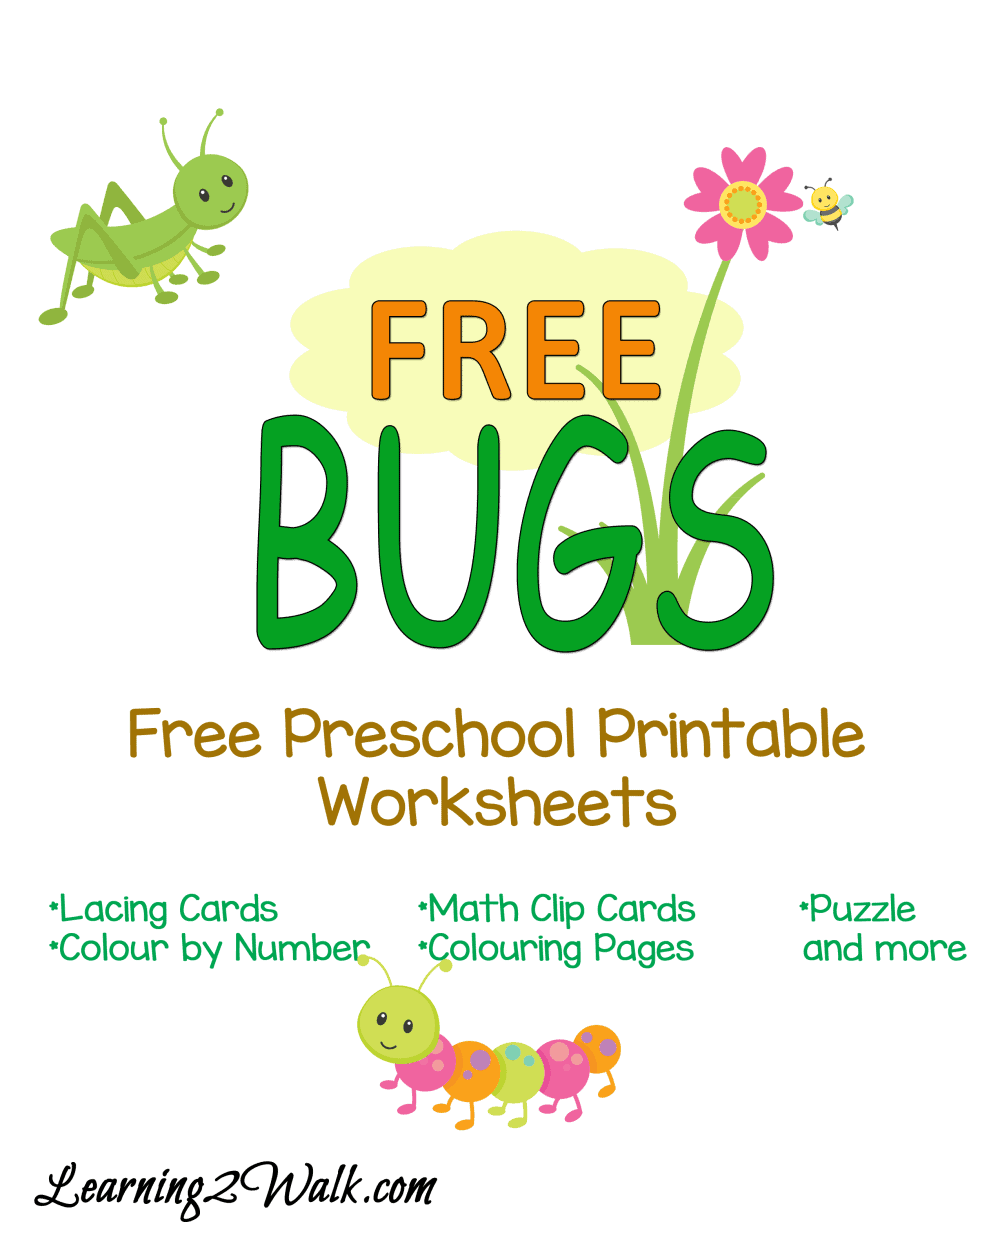 Free Hands-On Back to School Preschool Printable Worksheets